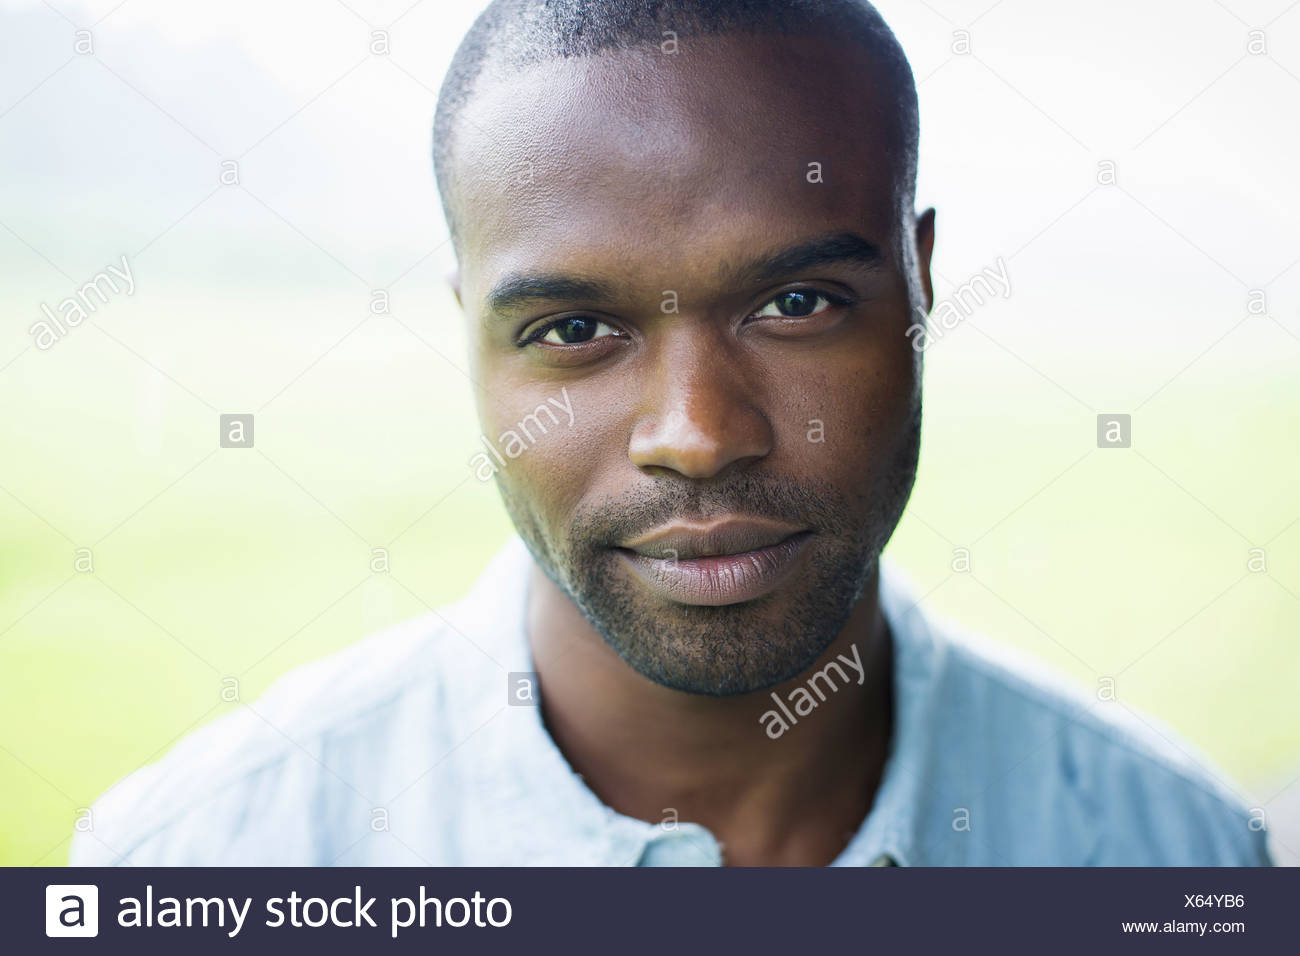 A young man in a blue shirt. - Stock Image